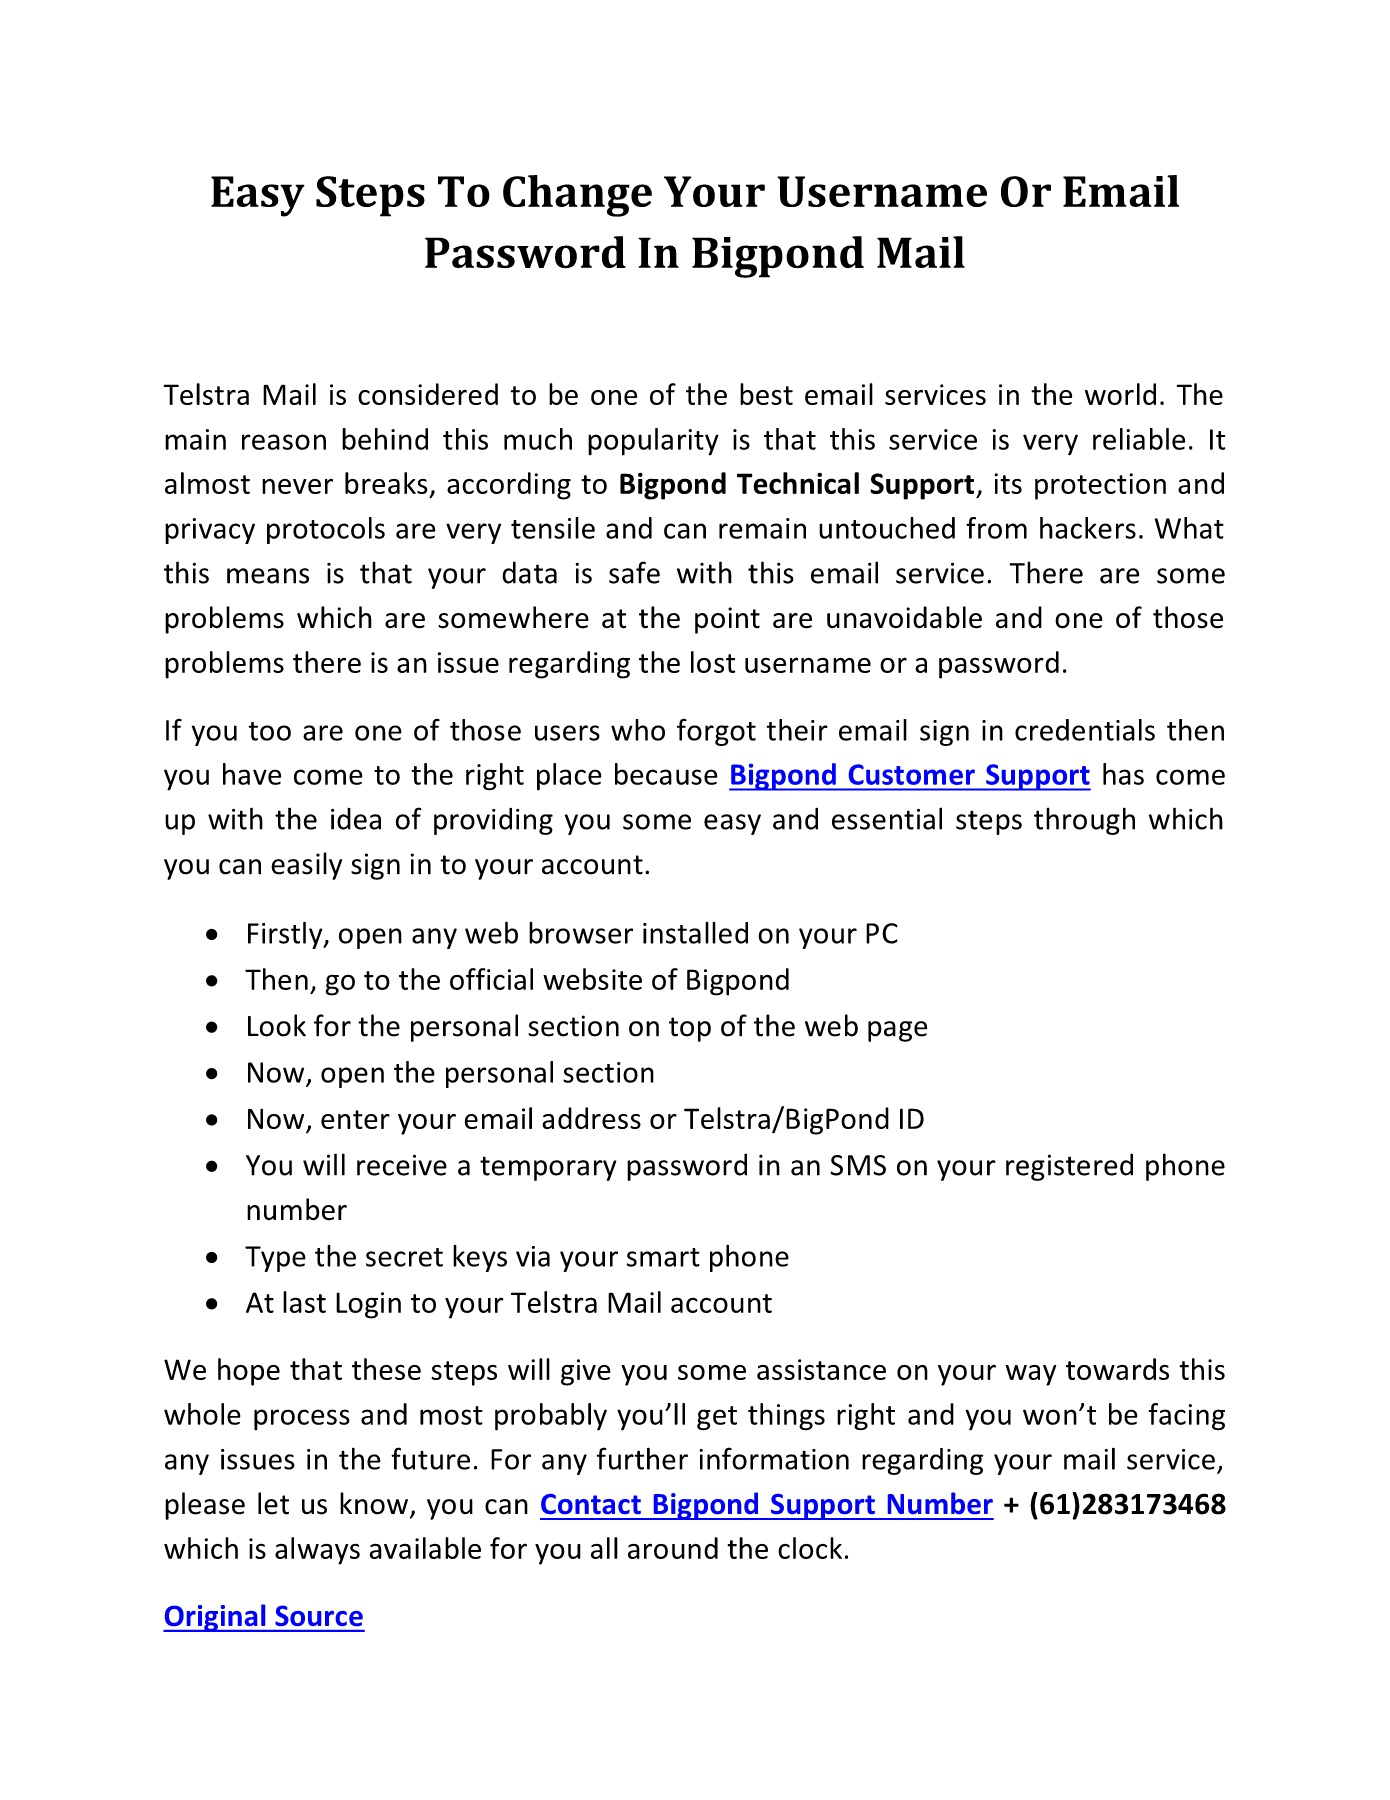 Easy Steps To Change Your Username Or Email Password In